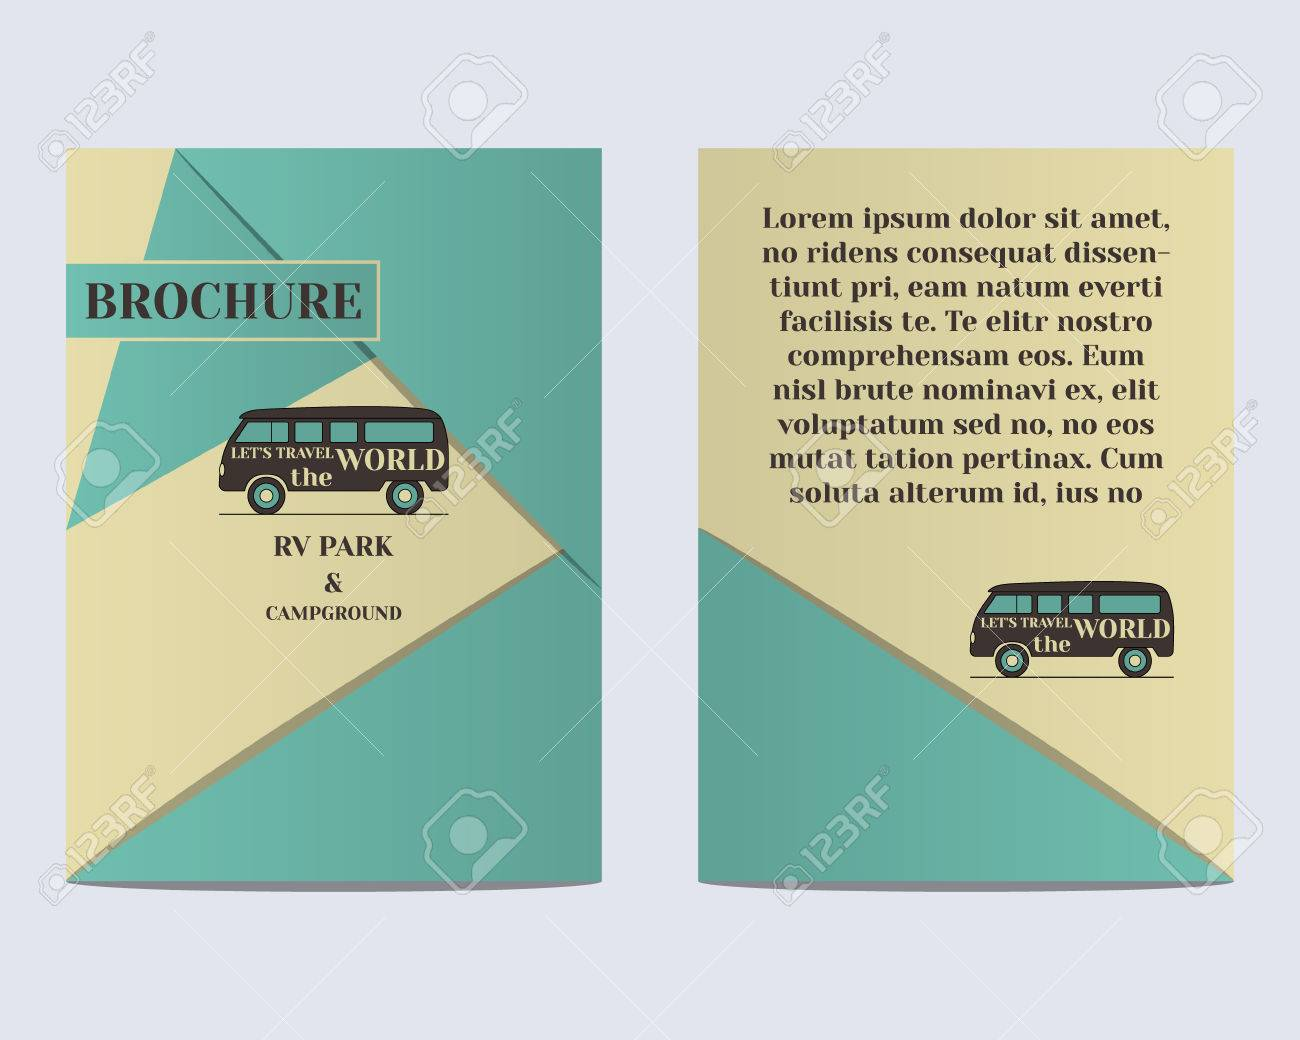 Travel Brochure Flyer Design Layout Template Rv Park And Campground